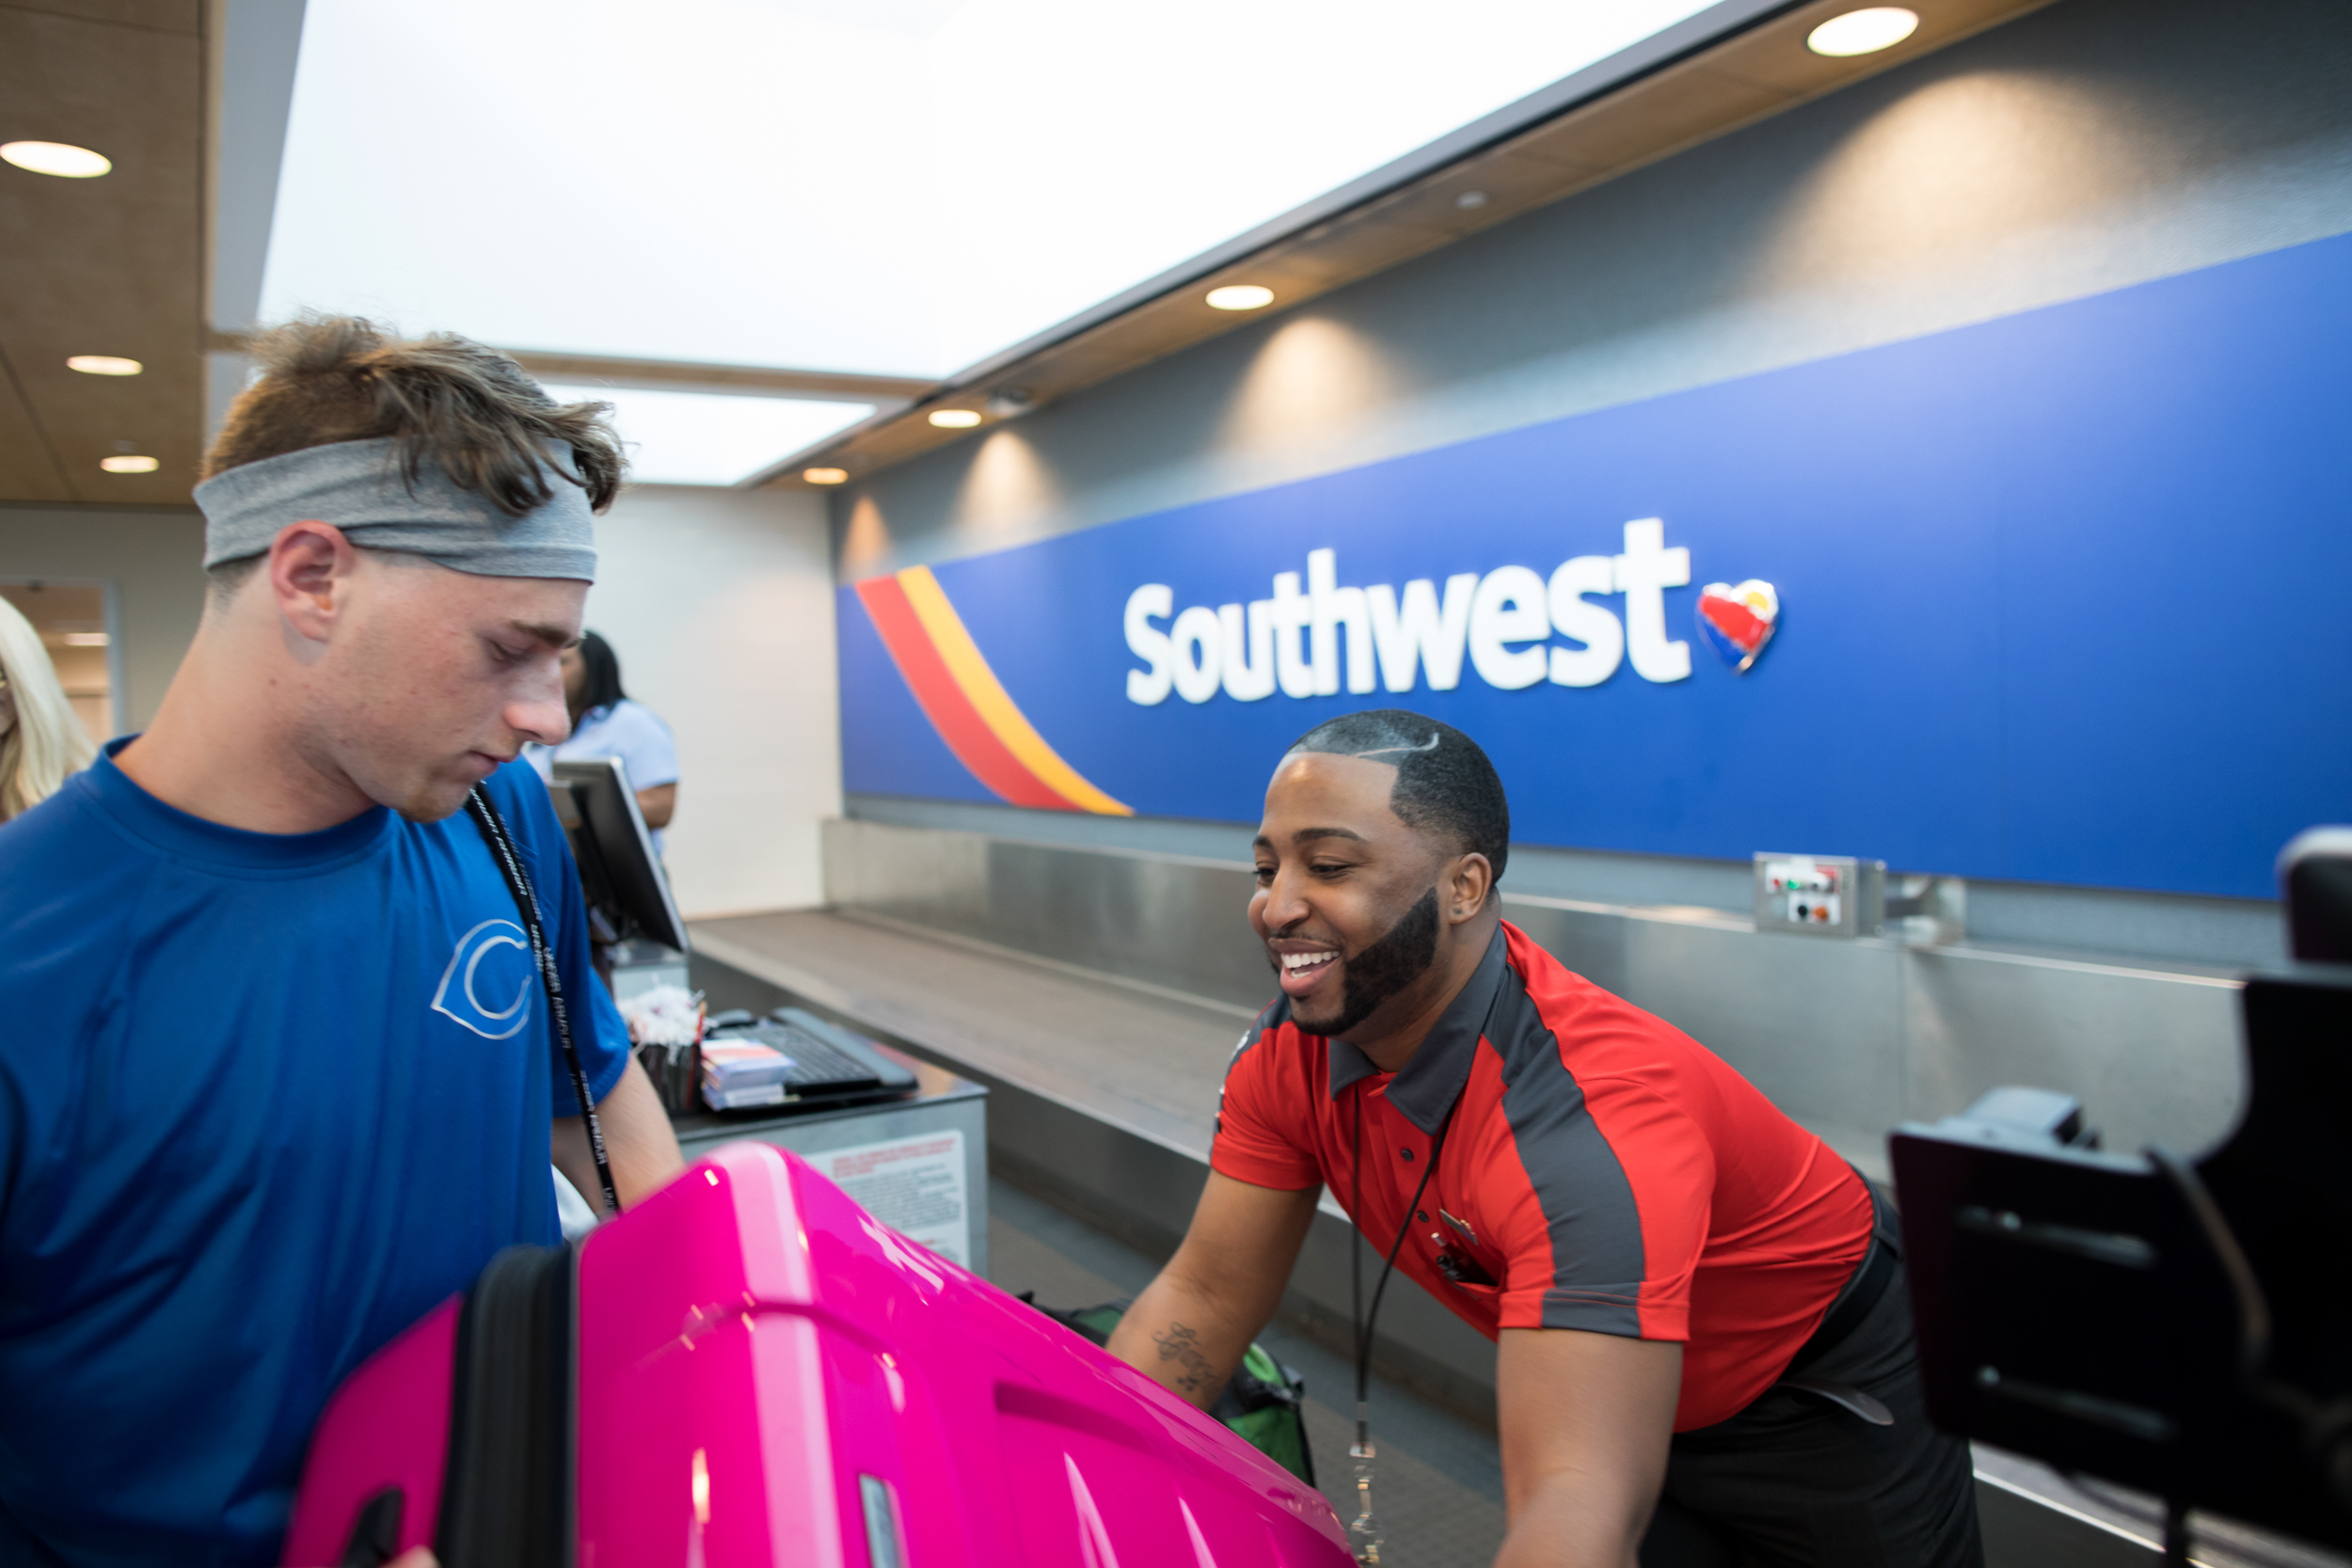 A Southwest Employee helps a Customer with his luggage